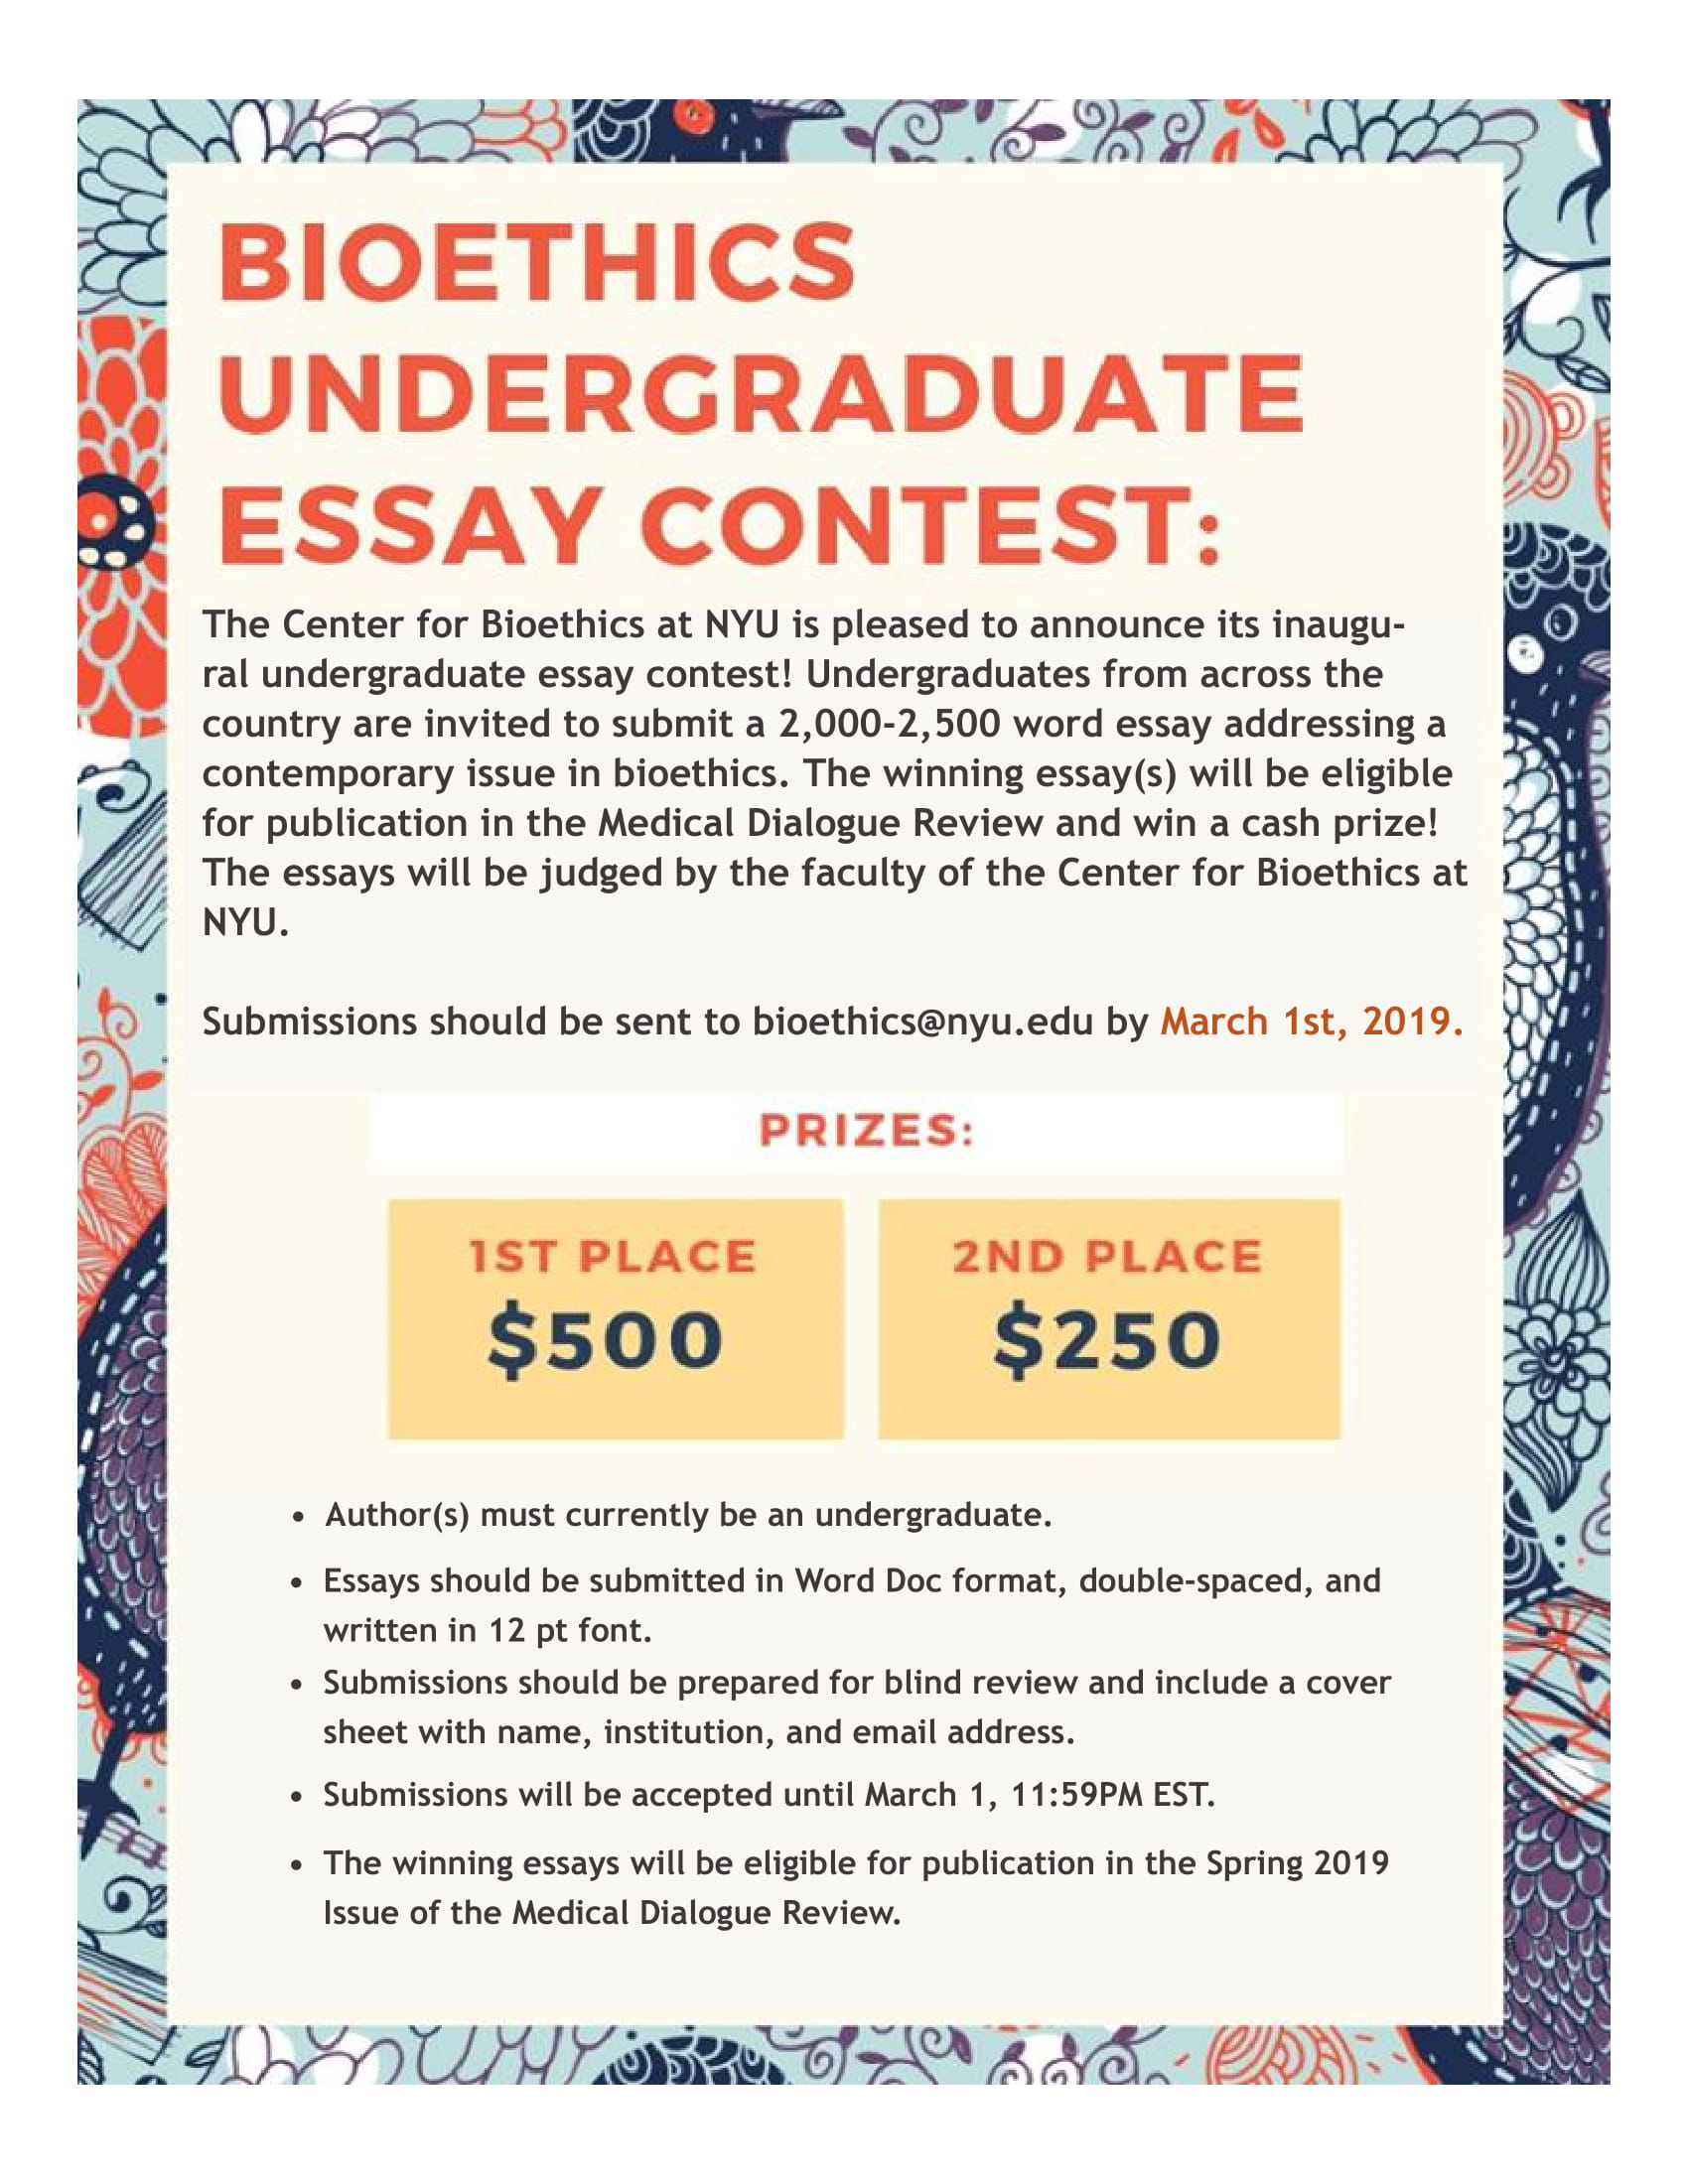 010 Nyu Essay Example Bioethics Contest Flier Awful Word Limit Supplement Stern Prompt Full